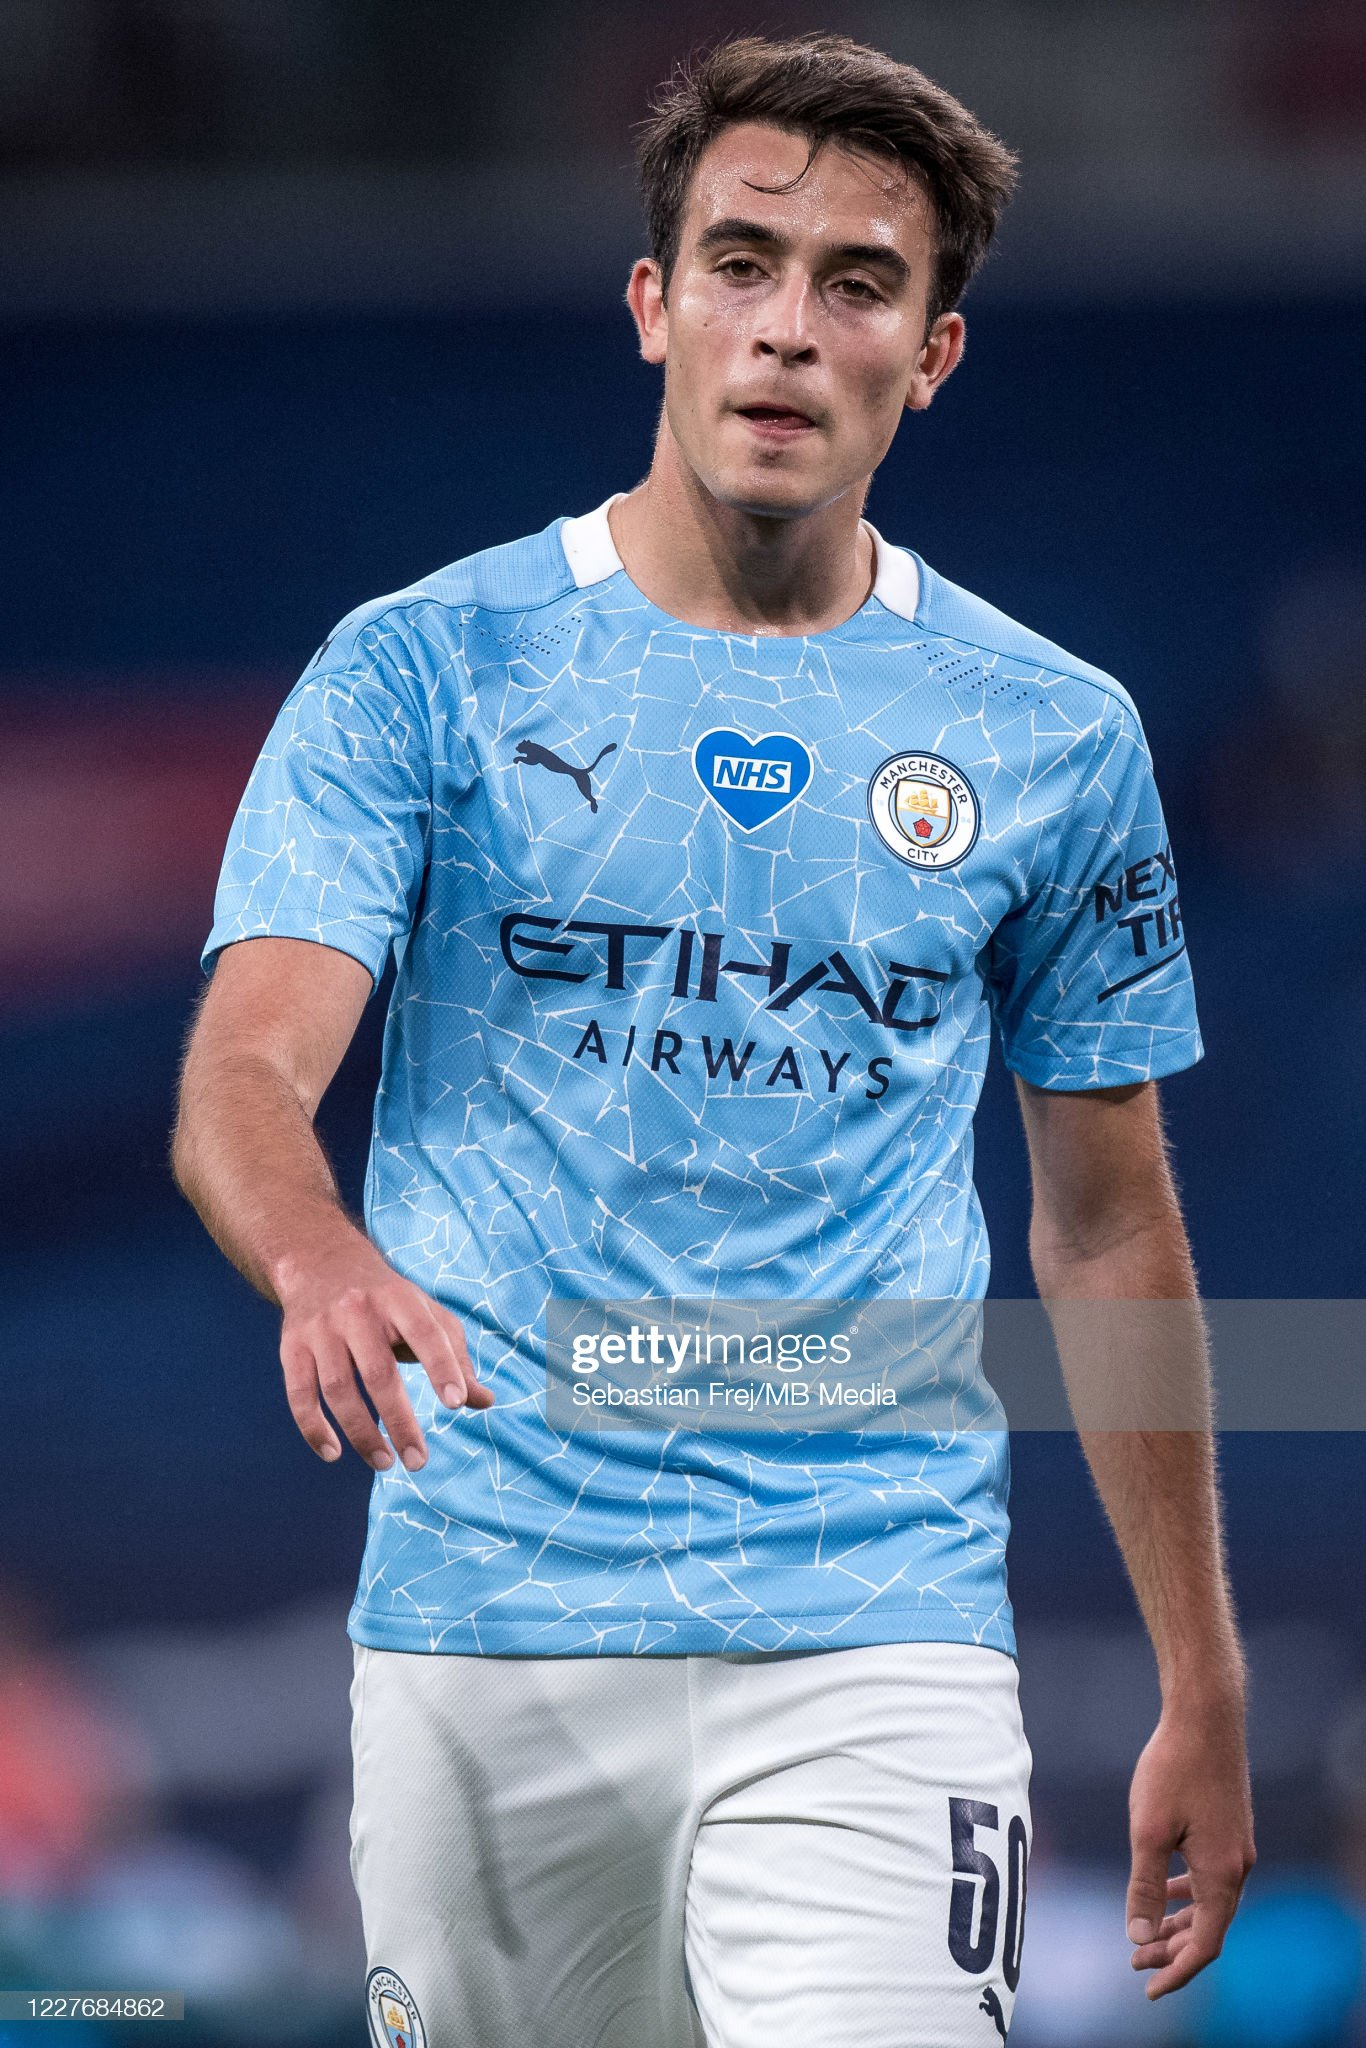 ¿Cuánto mide Eric Garcia? - Altura real: 1,79 - Real height - Página 5 Eric-garcia-of-manchester-city-looks-on-during-the-fa-cup-semi-final-picture-id1227684862?s=2048x2048